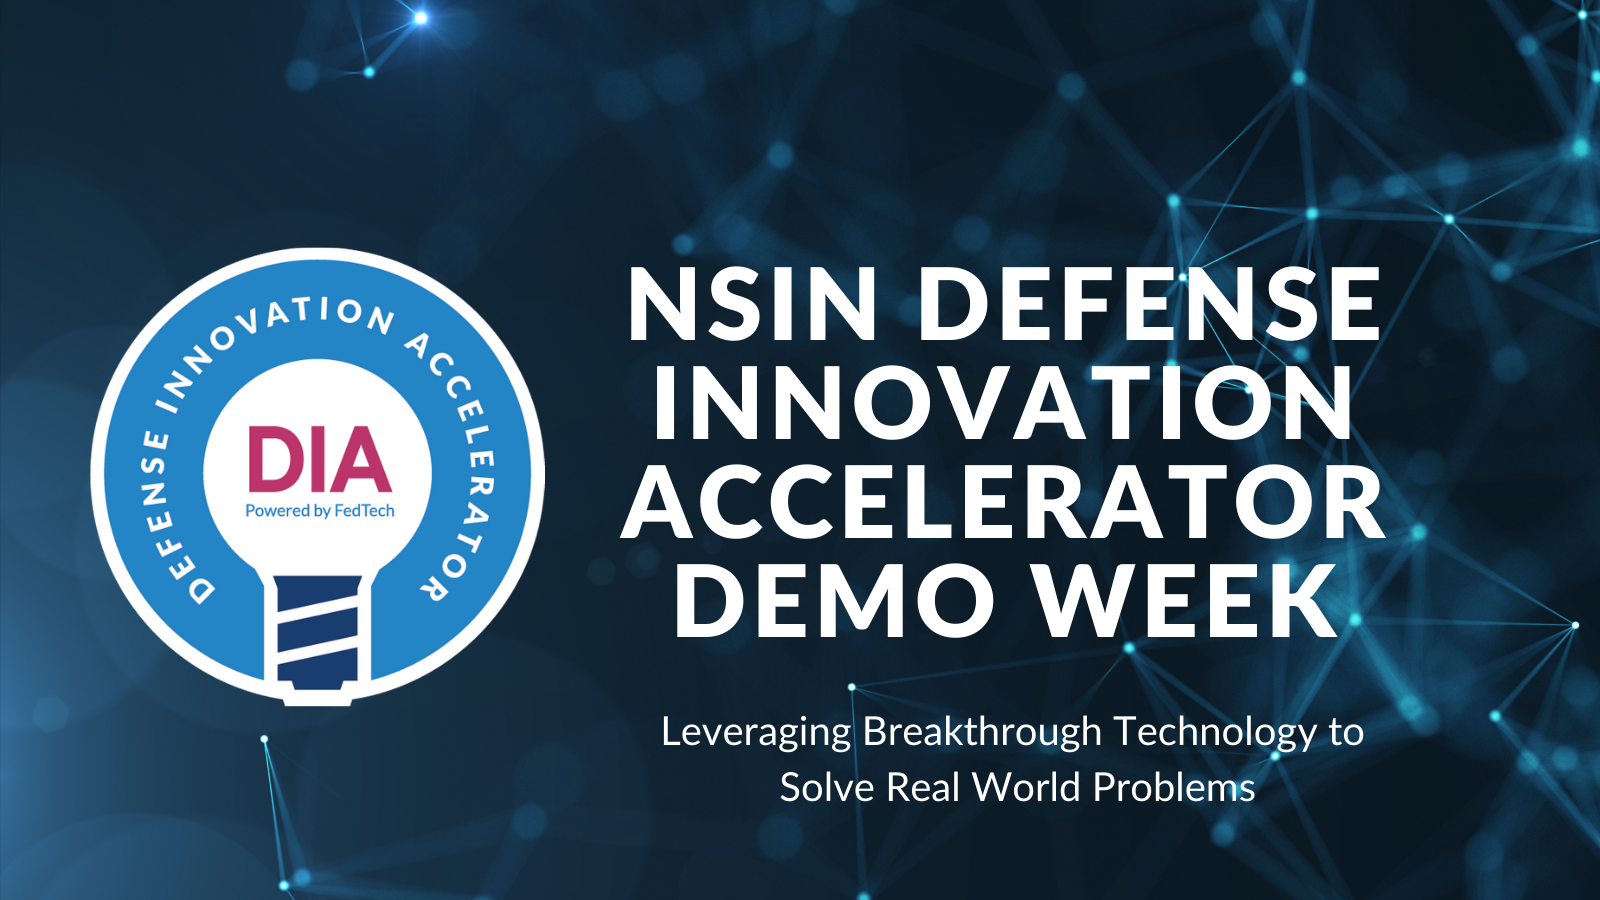 NSIN DIA Demo Week Cover image